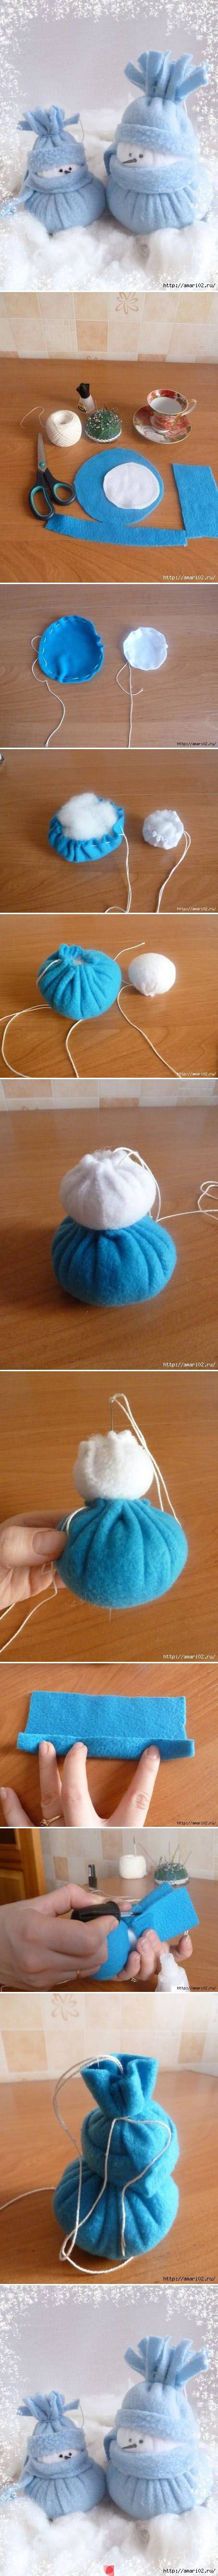 This is a great winter craft to do with kids!  Love it!!!!